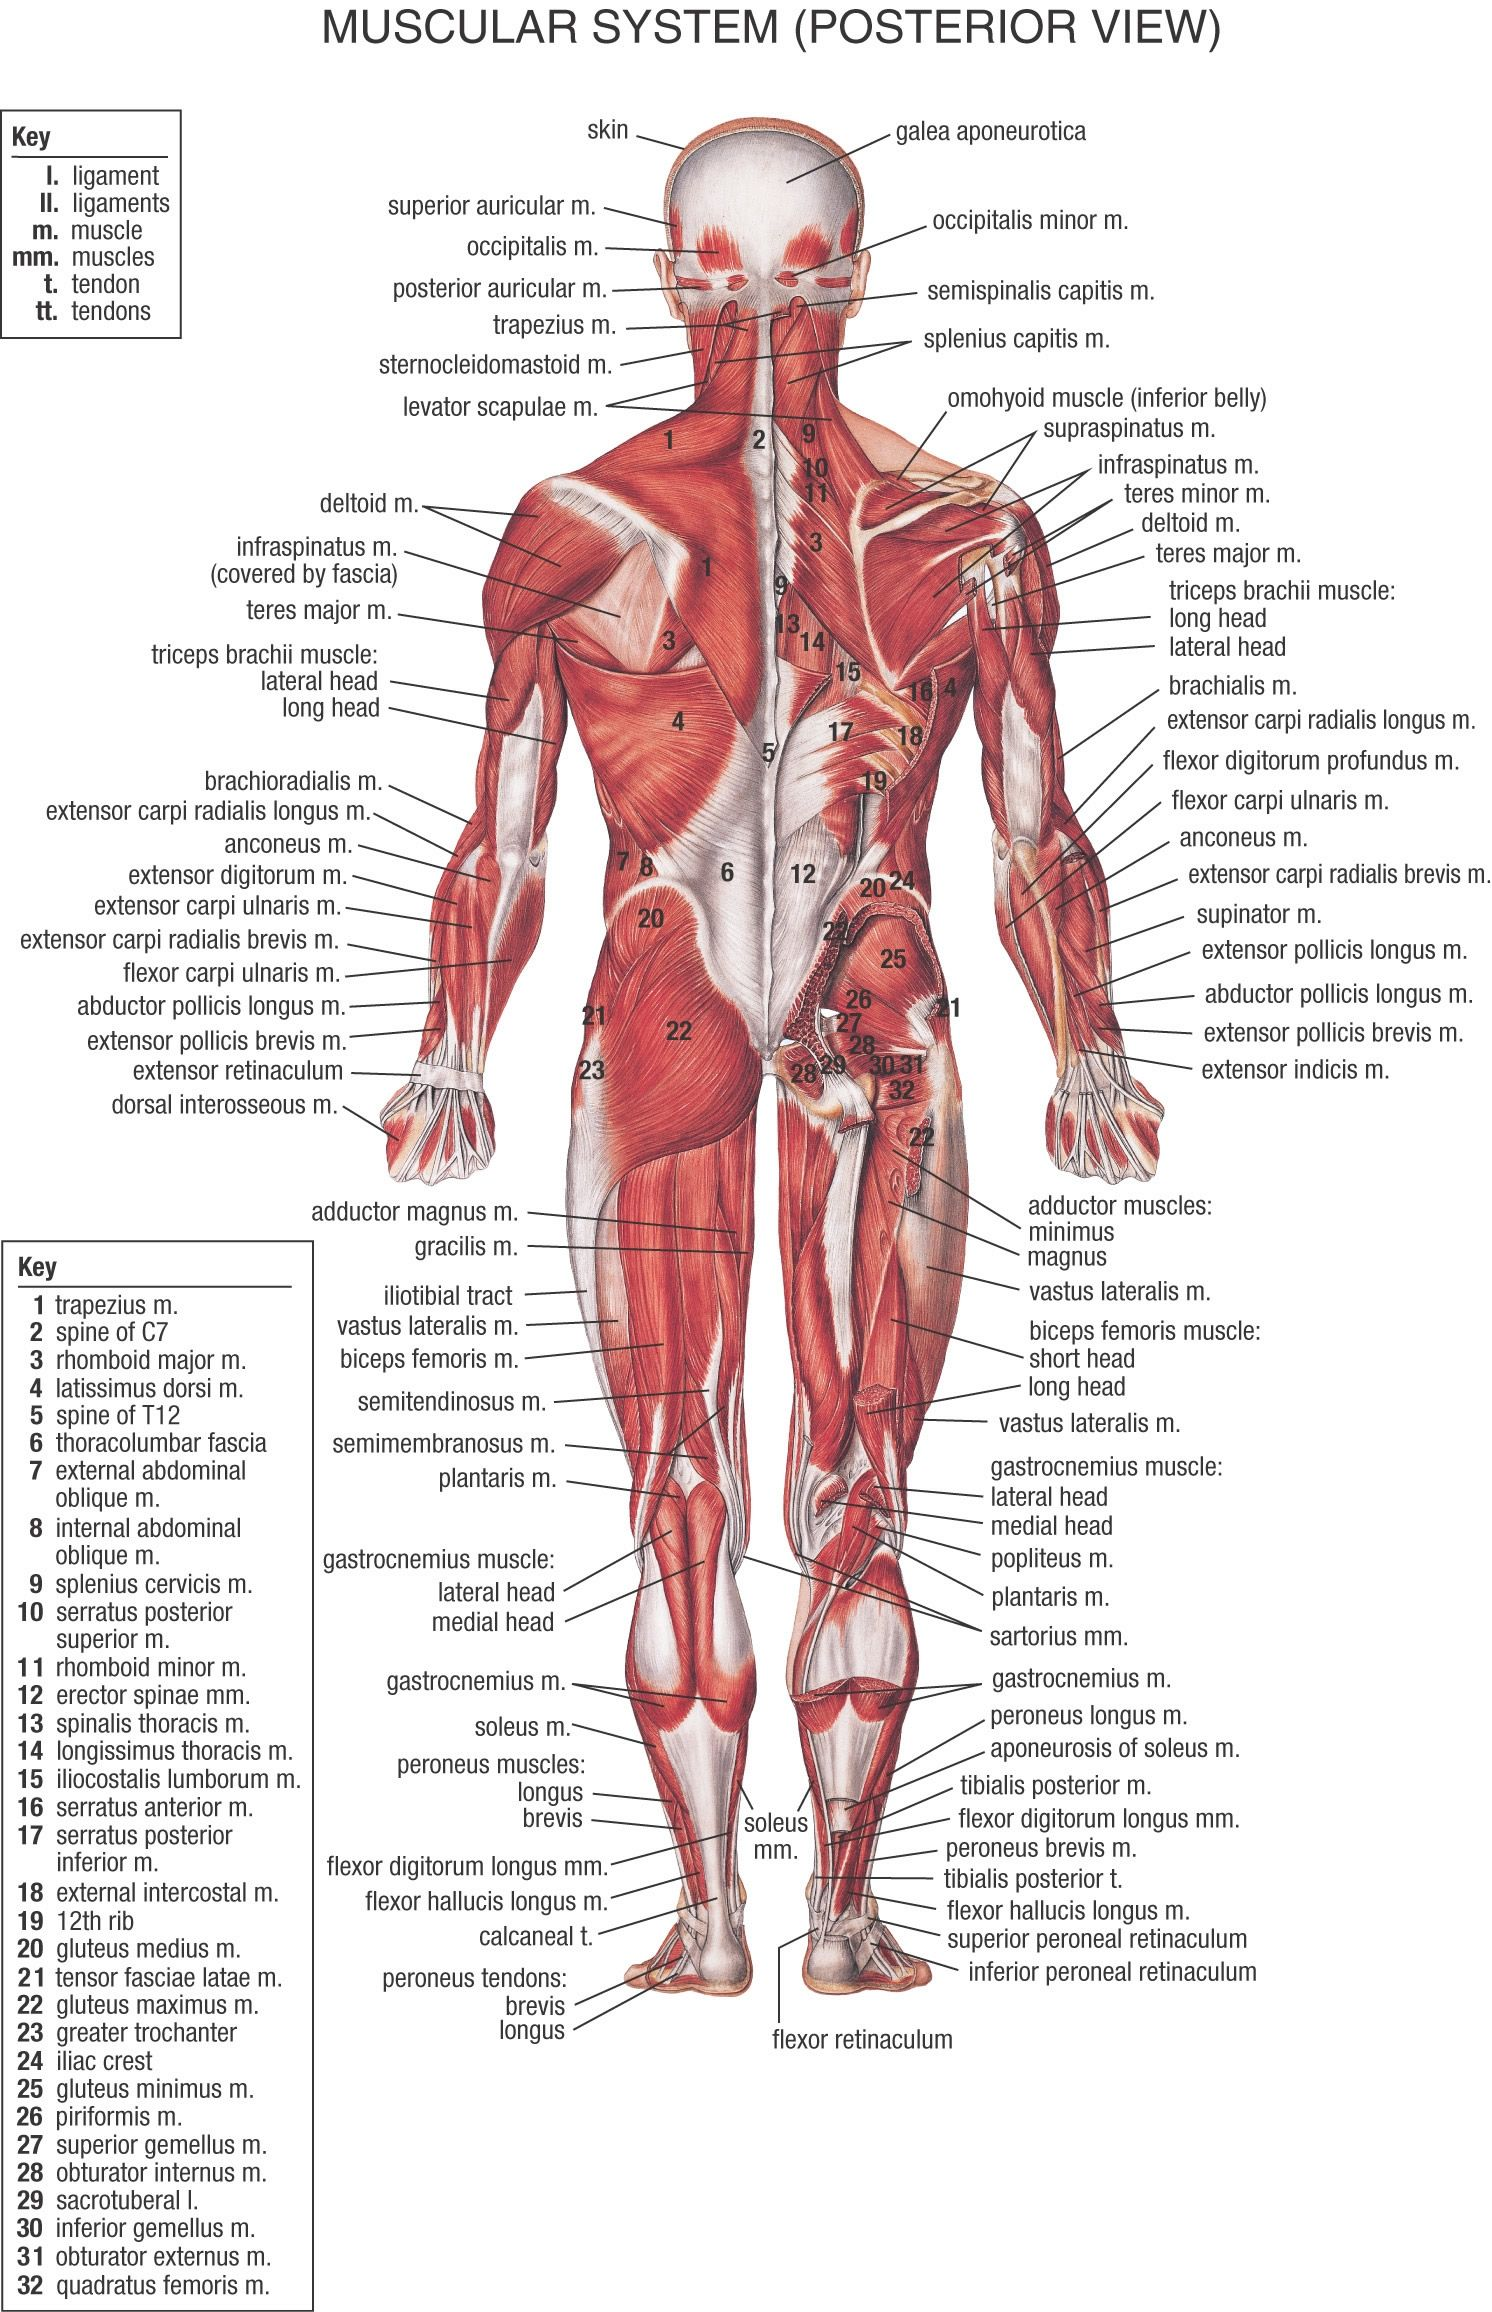 Female Musculoskeletal System Diagram House Wiring Diagram Symbols